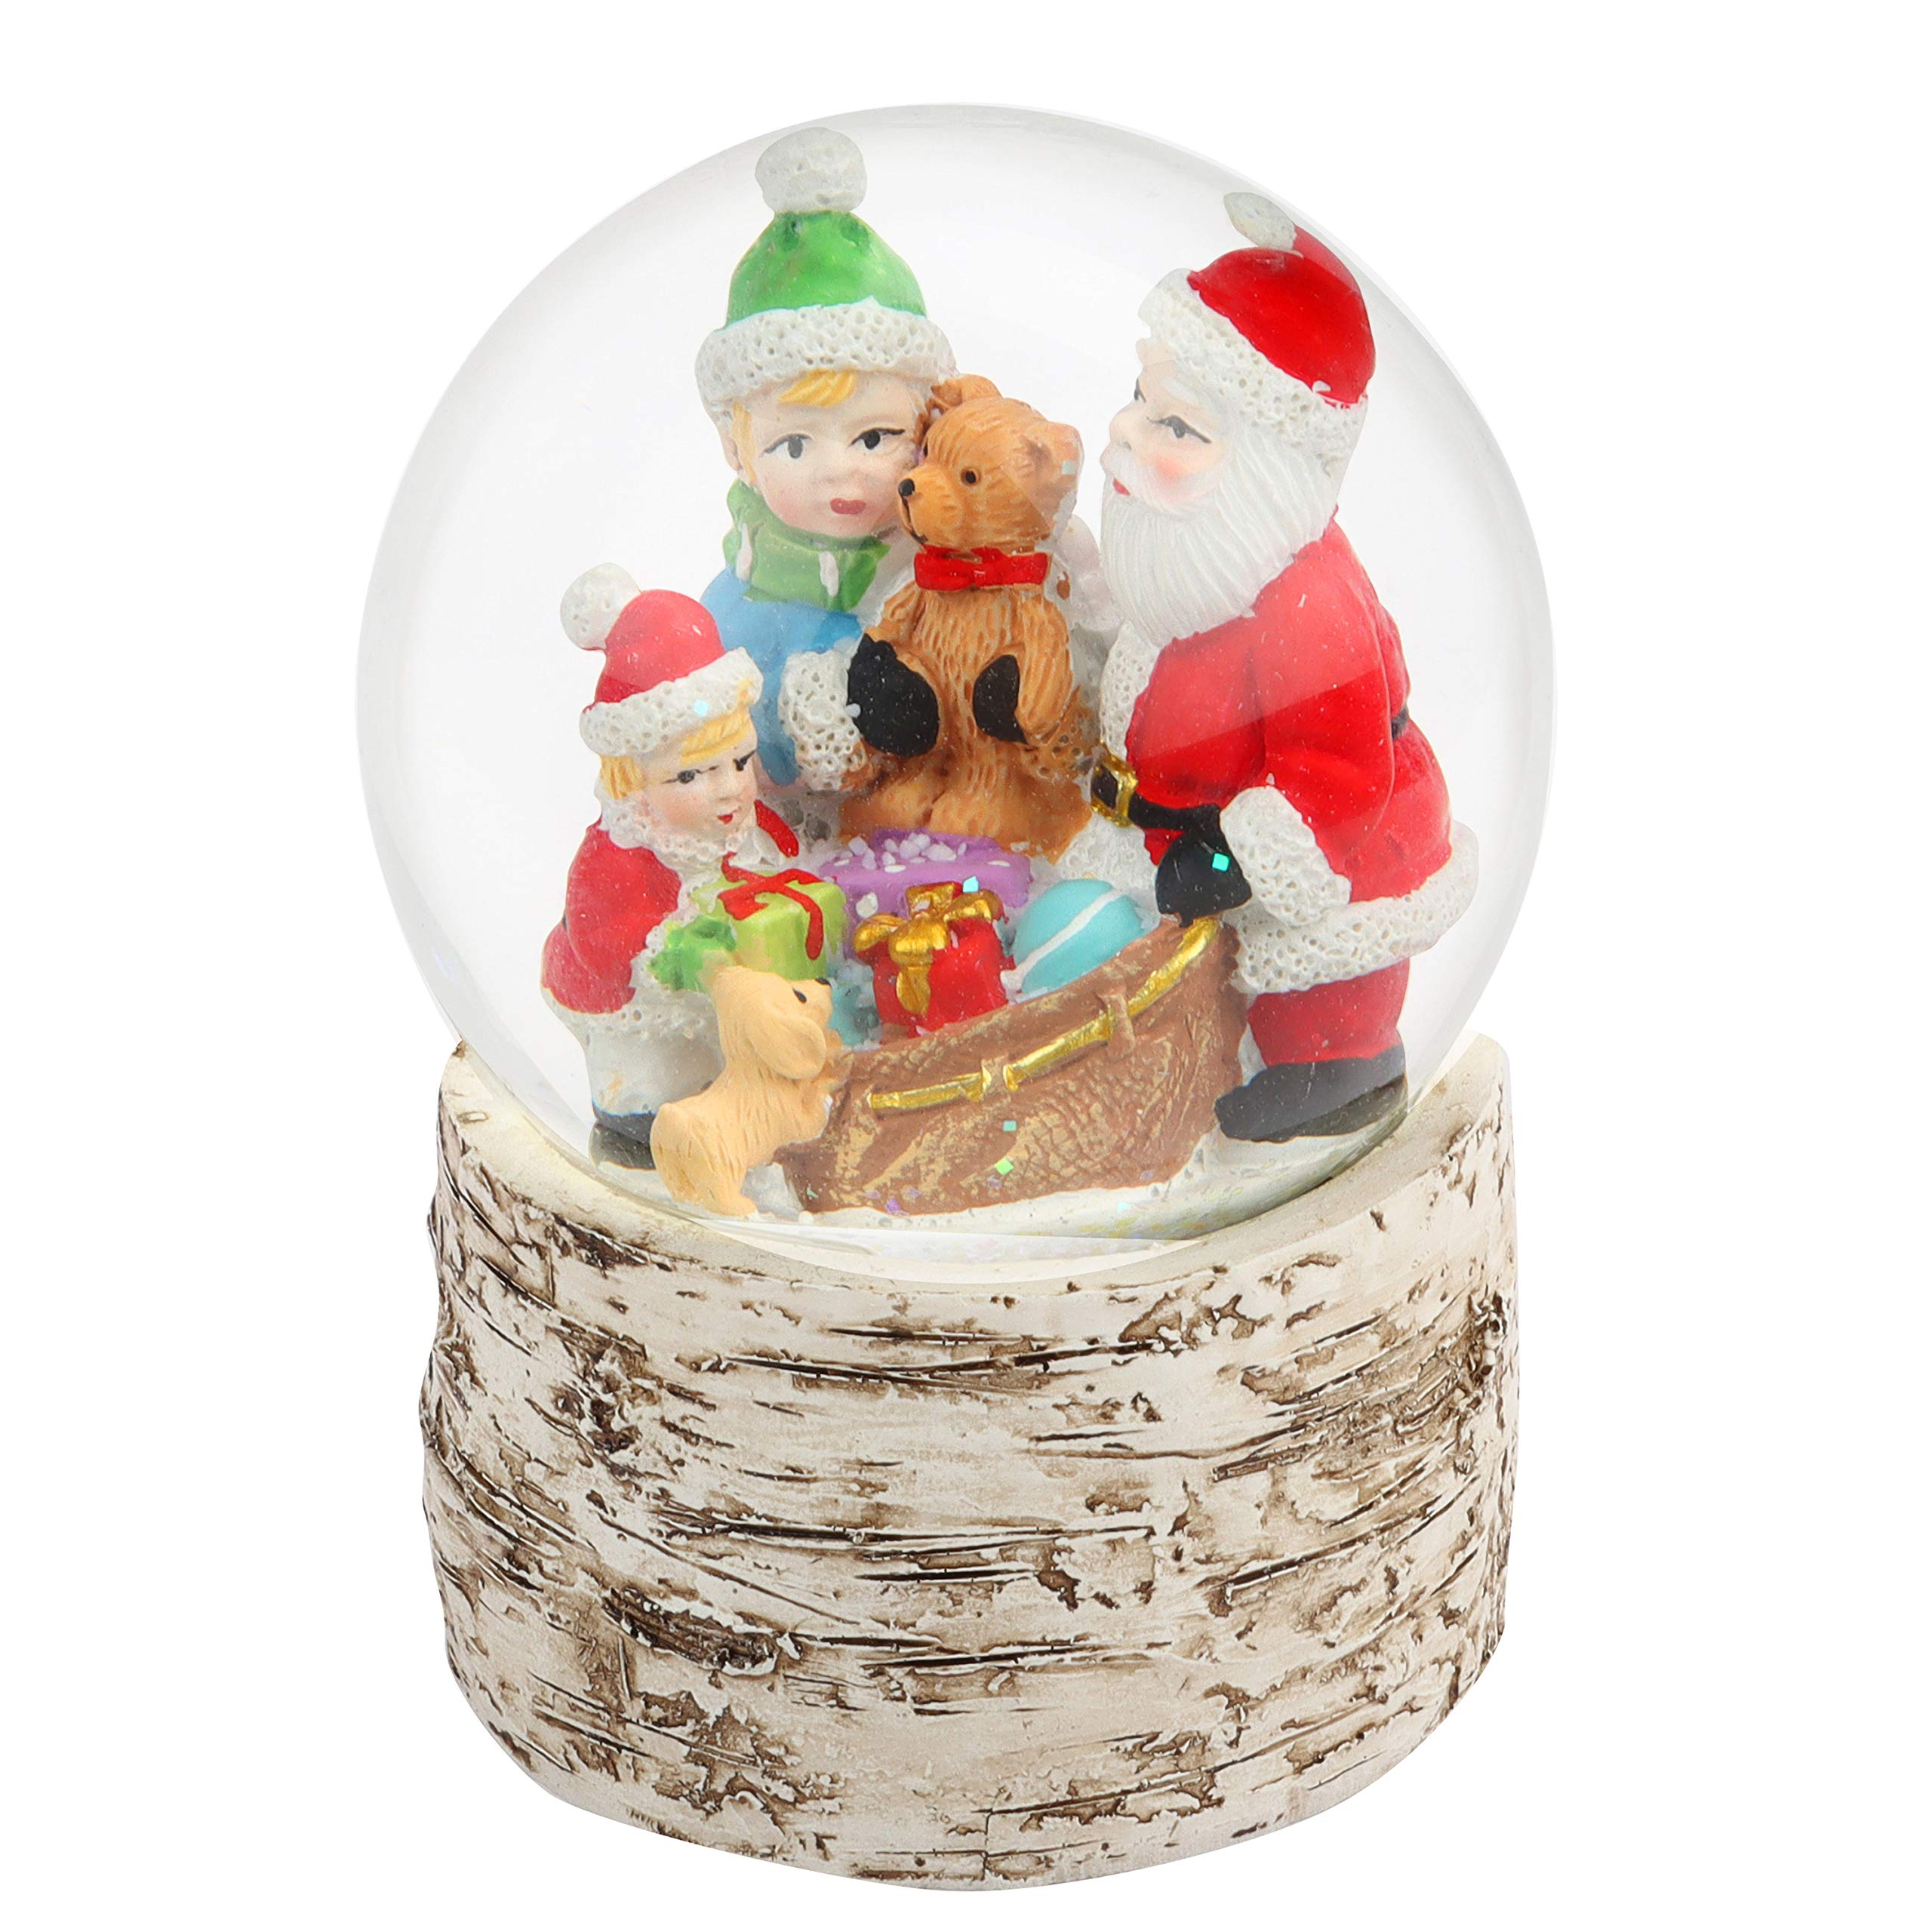 BELLE VOUS Christmas Snow Globe Ornaments - 14cm Santa Children and Puppy With Birch Base Snow Globe for Xmas Decoration, Gift and Christmas Table Decor